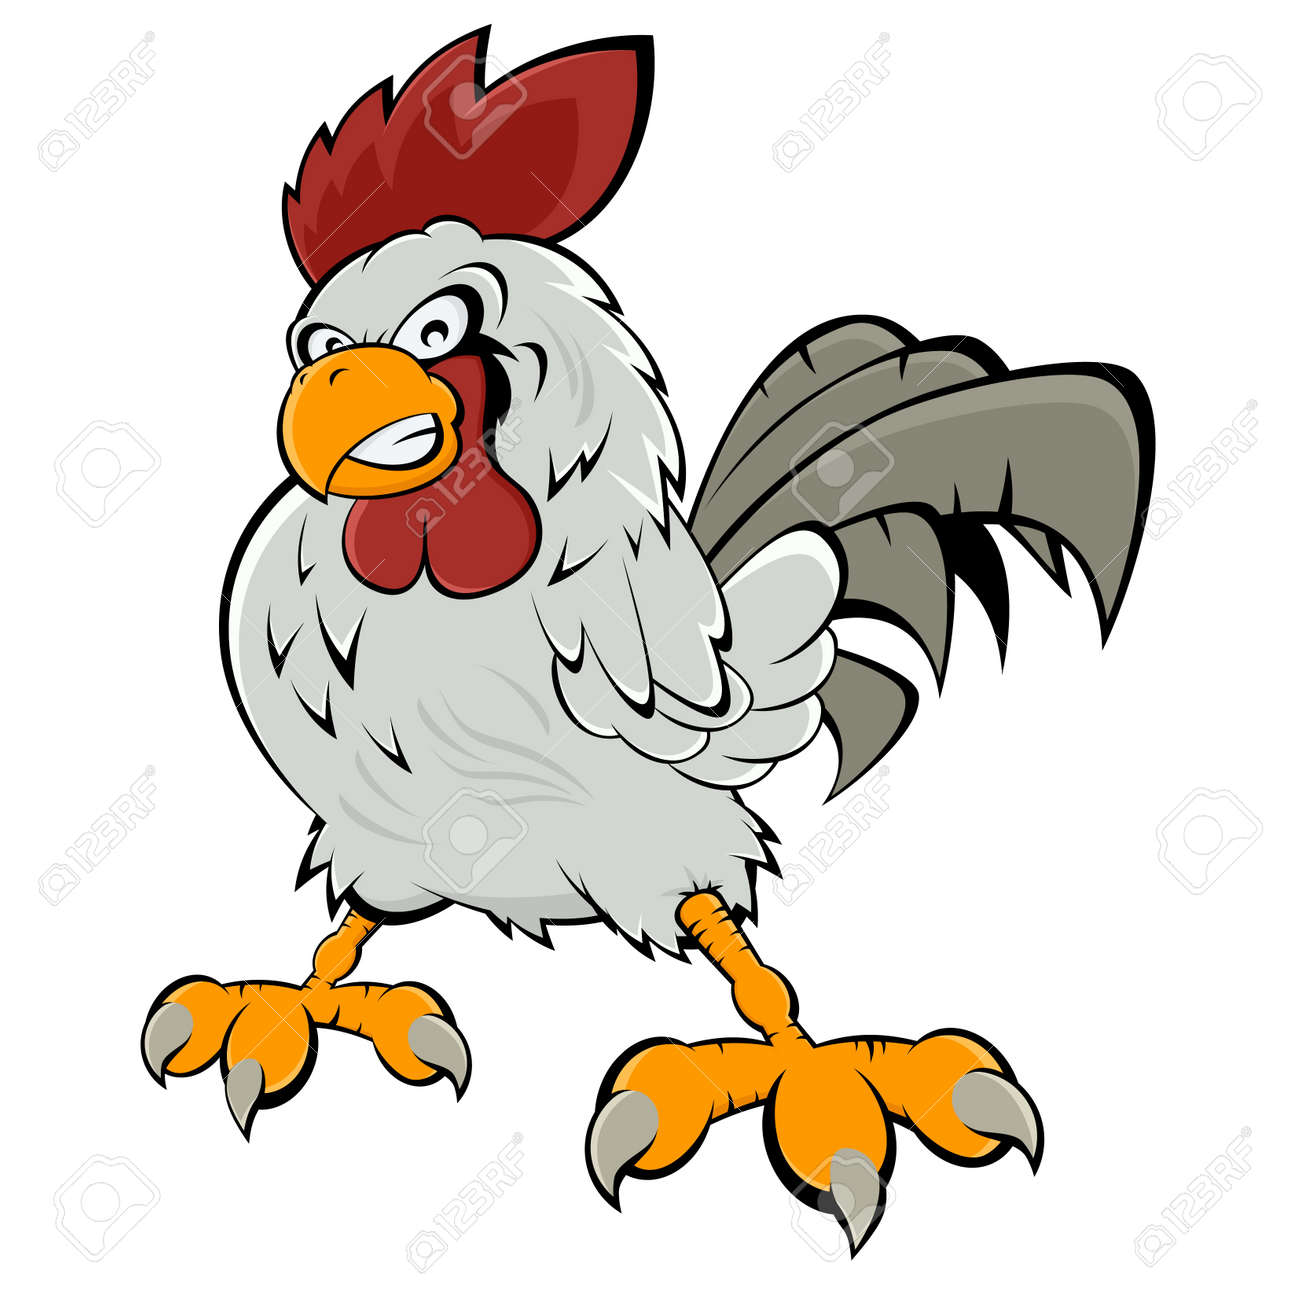 angry cartoon rooster royalty free cliparts vectors and stock